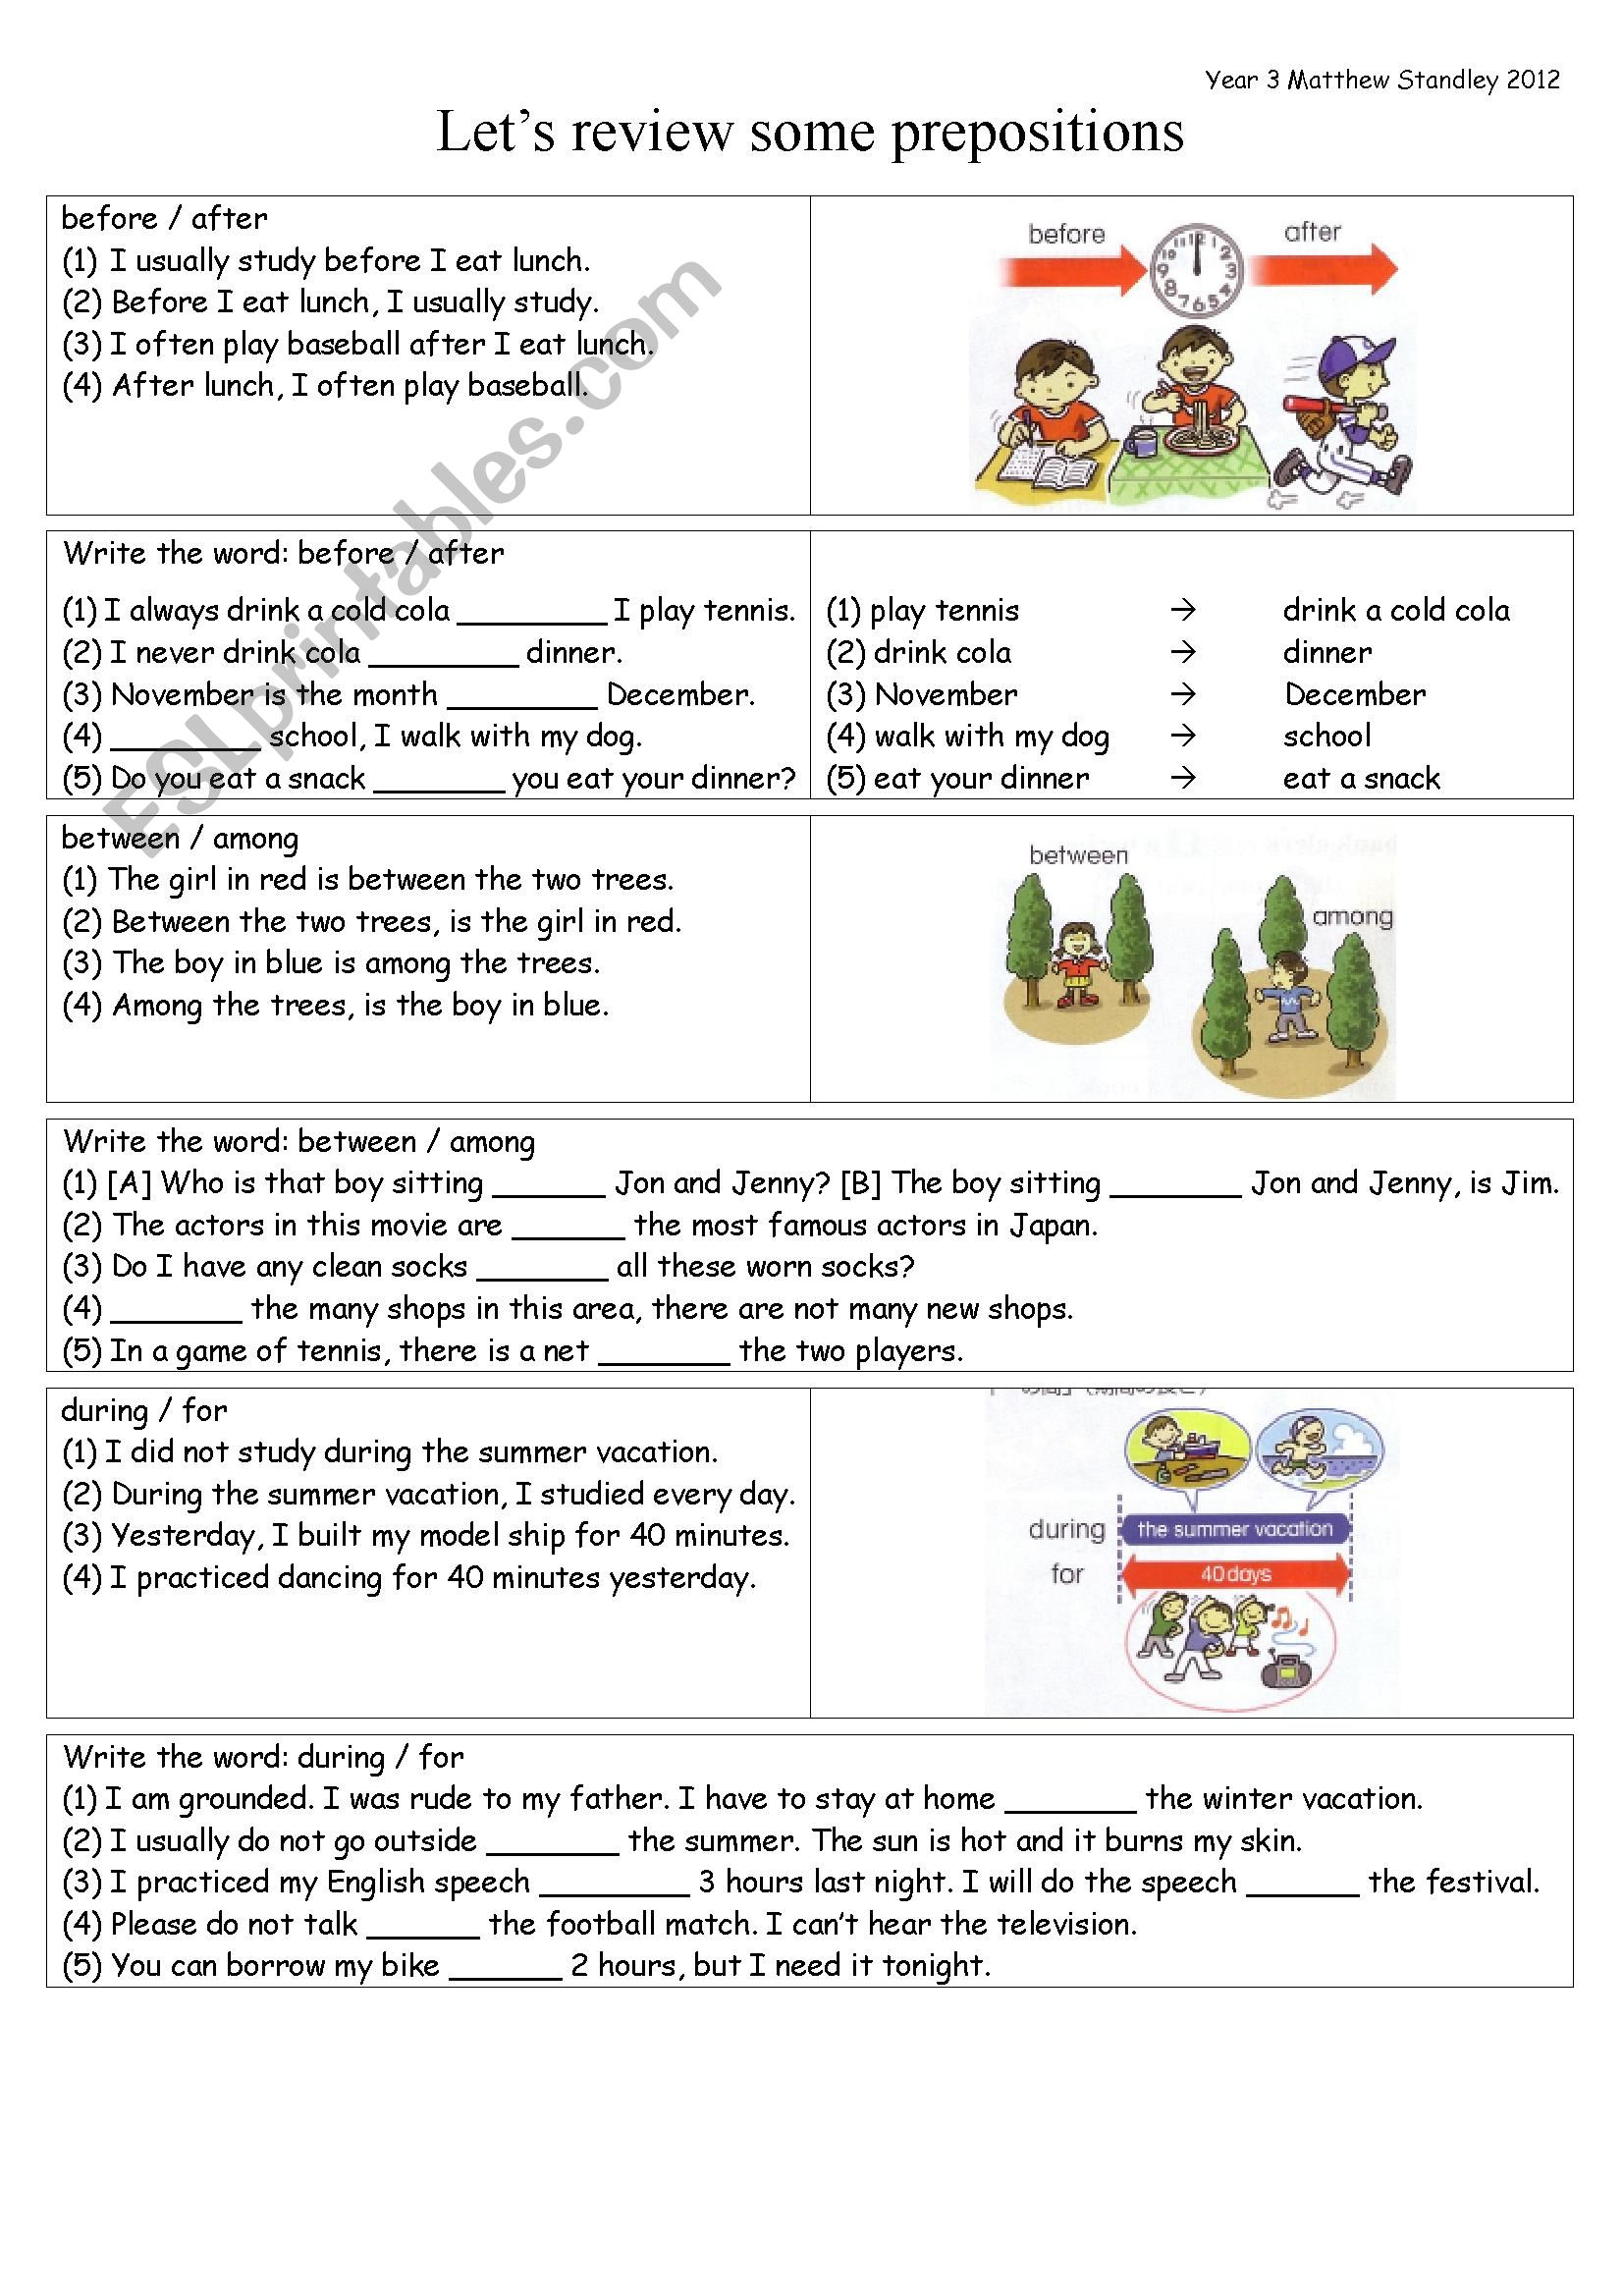 Prepositions Review Before After Between Among During For